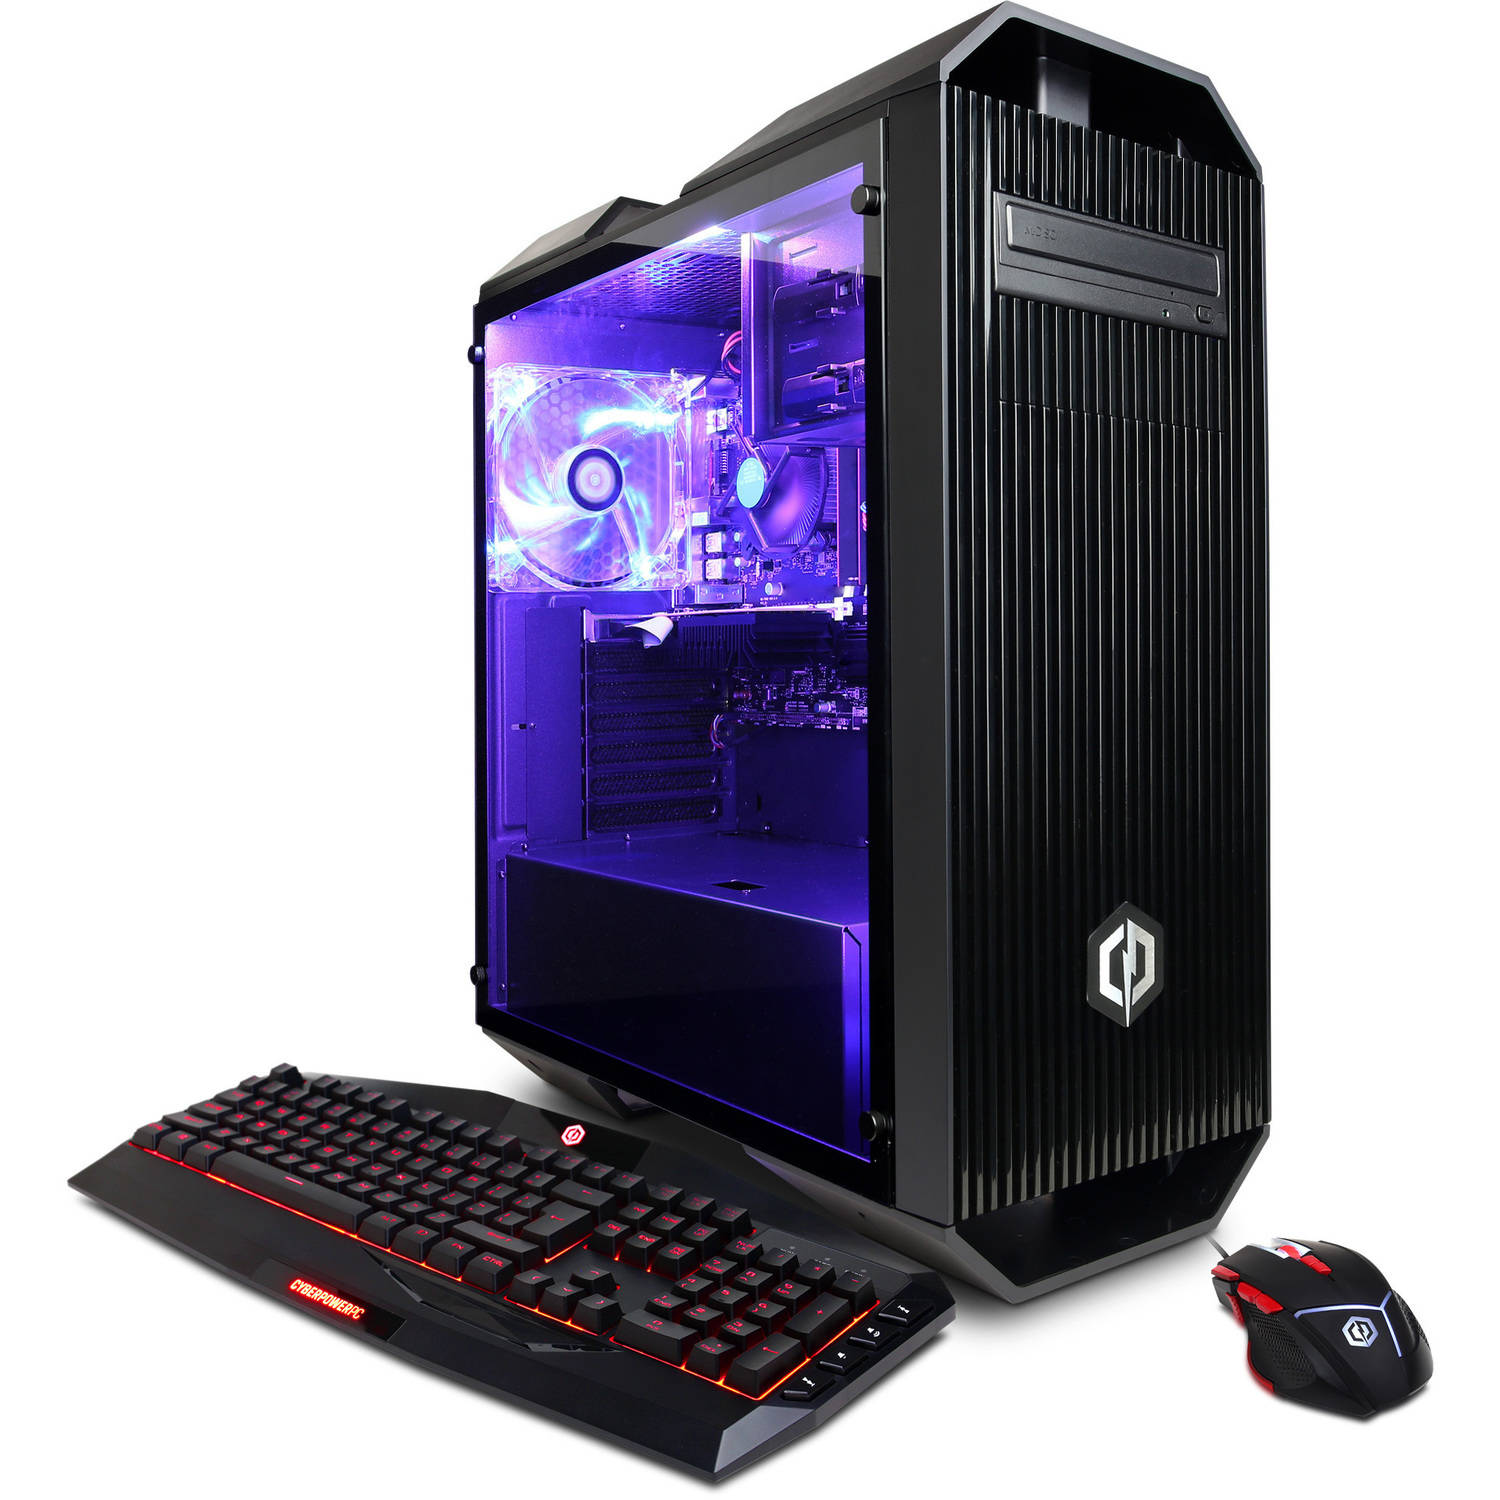 CYBERPOWERPC Gamer Xtreme GXi10140W Gaming Desktop PC with Intel Core i5-7600K Processor, 8GB Memory, 1TB Hard... by CyberPowerPC